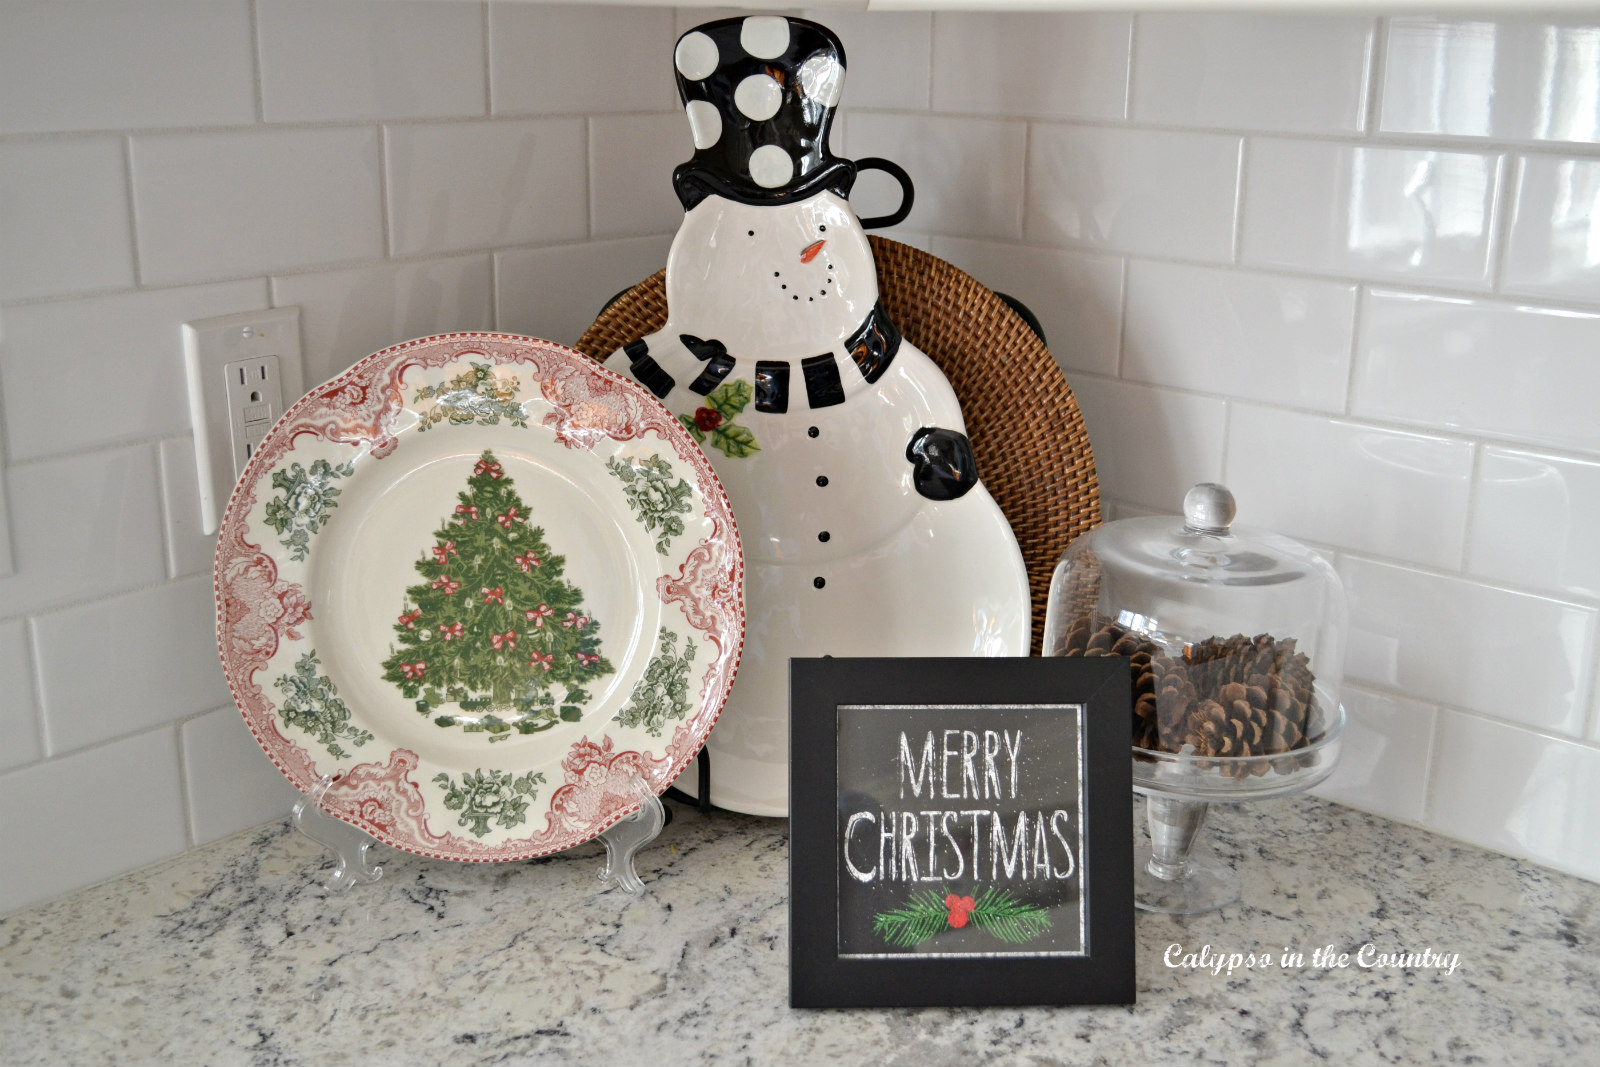 Christmas Vignette on Kitchen Counter